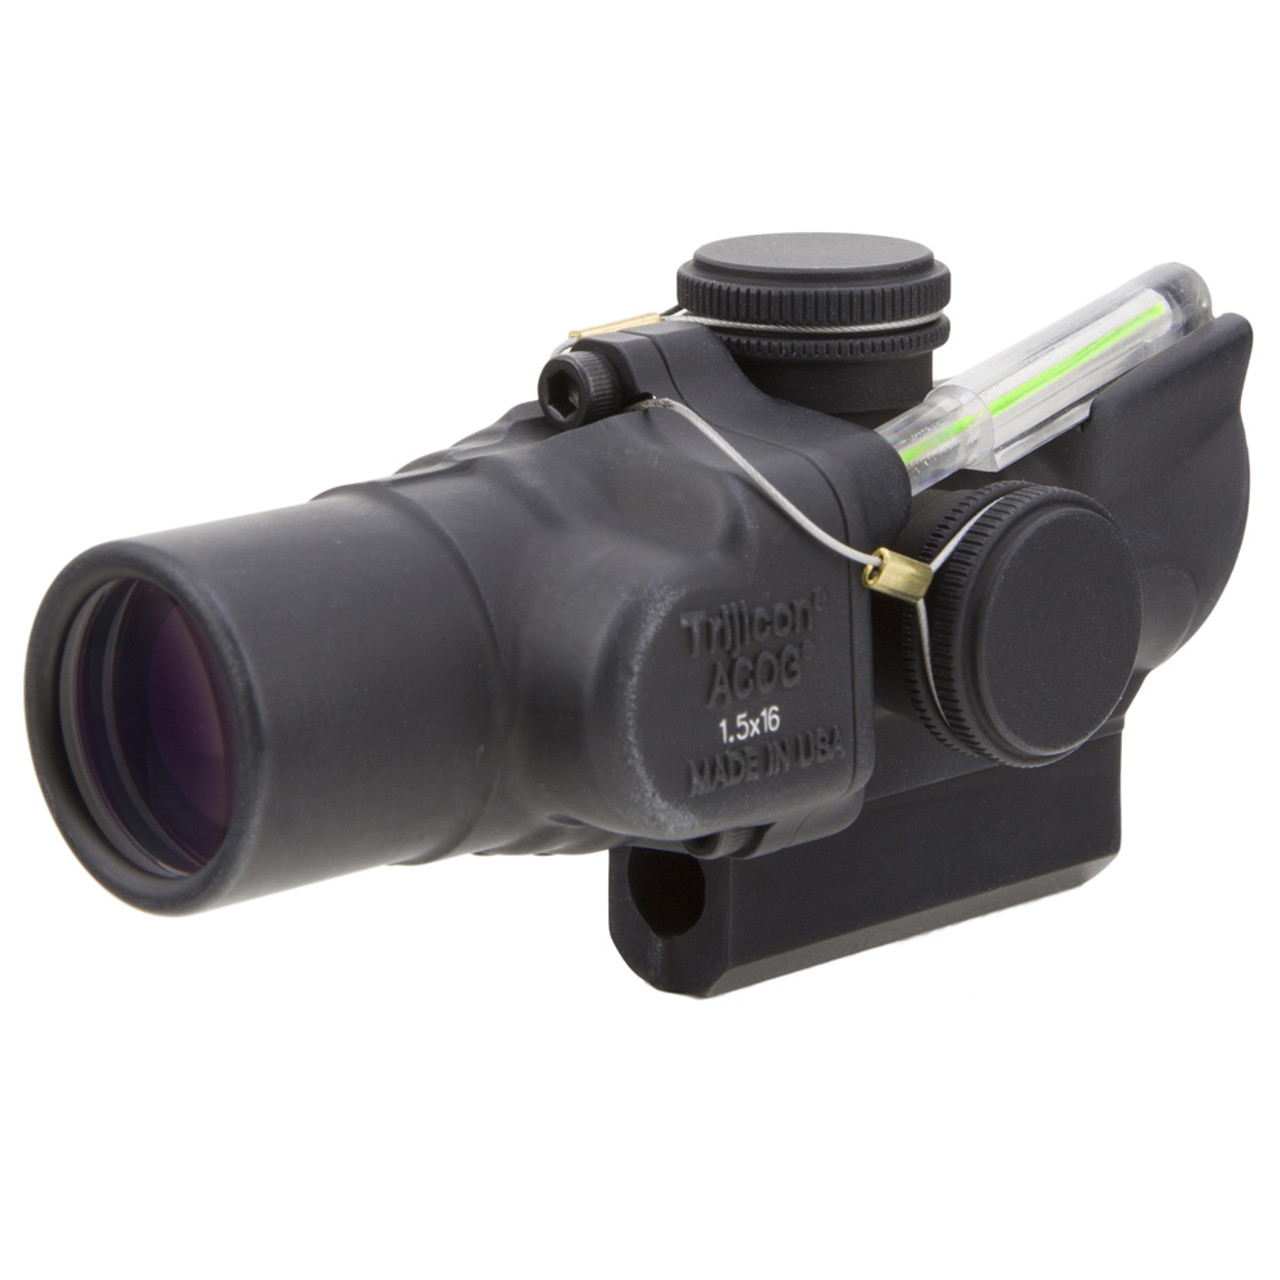 trijicon 1 5x16s compact acog scope dual illuminated green ring 2